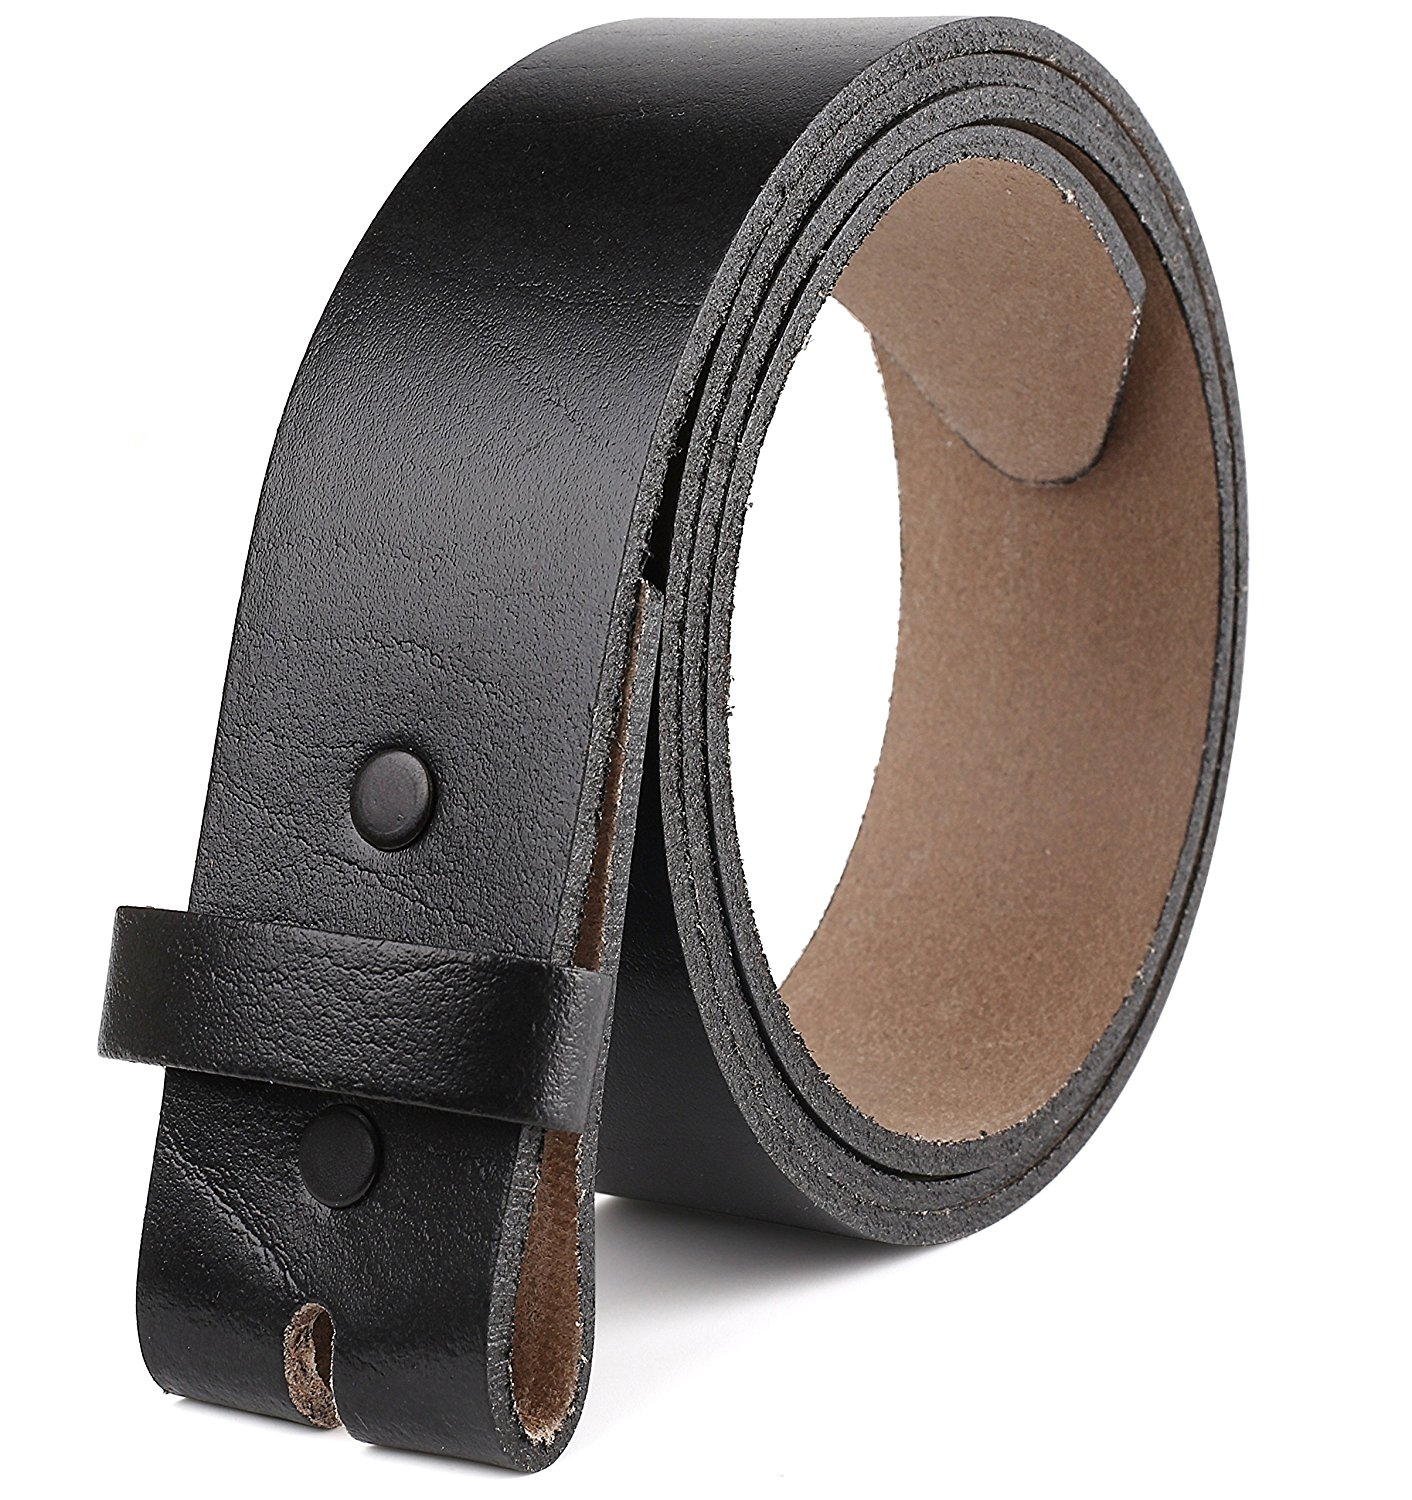 """Belt for Buckles 100% Top Grain One Piece Leather,up to Size 62, 1-1/2"""" Wide, Made in USA"""